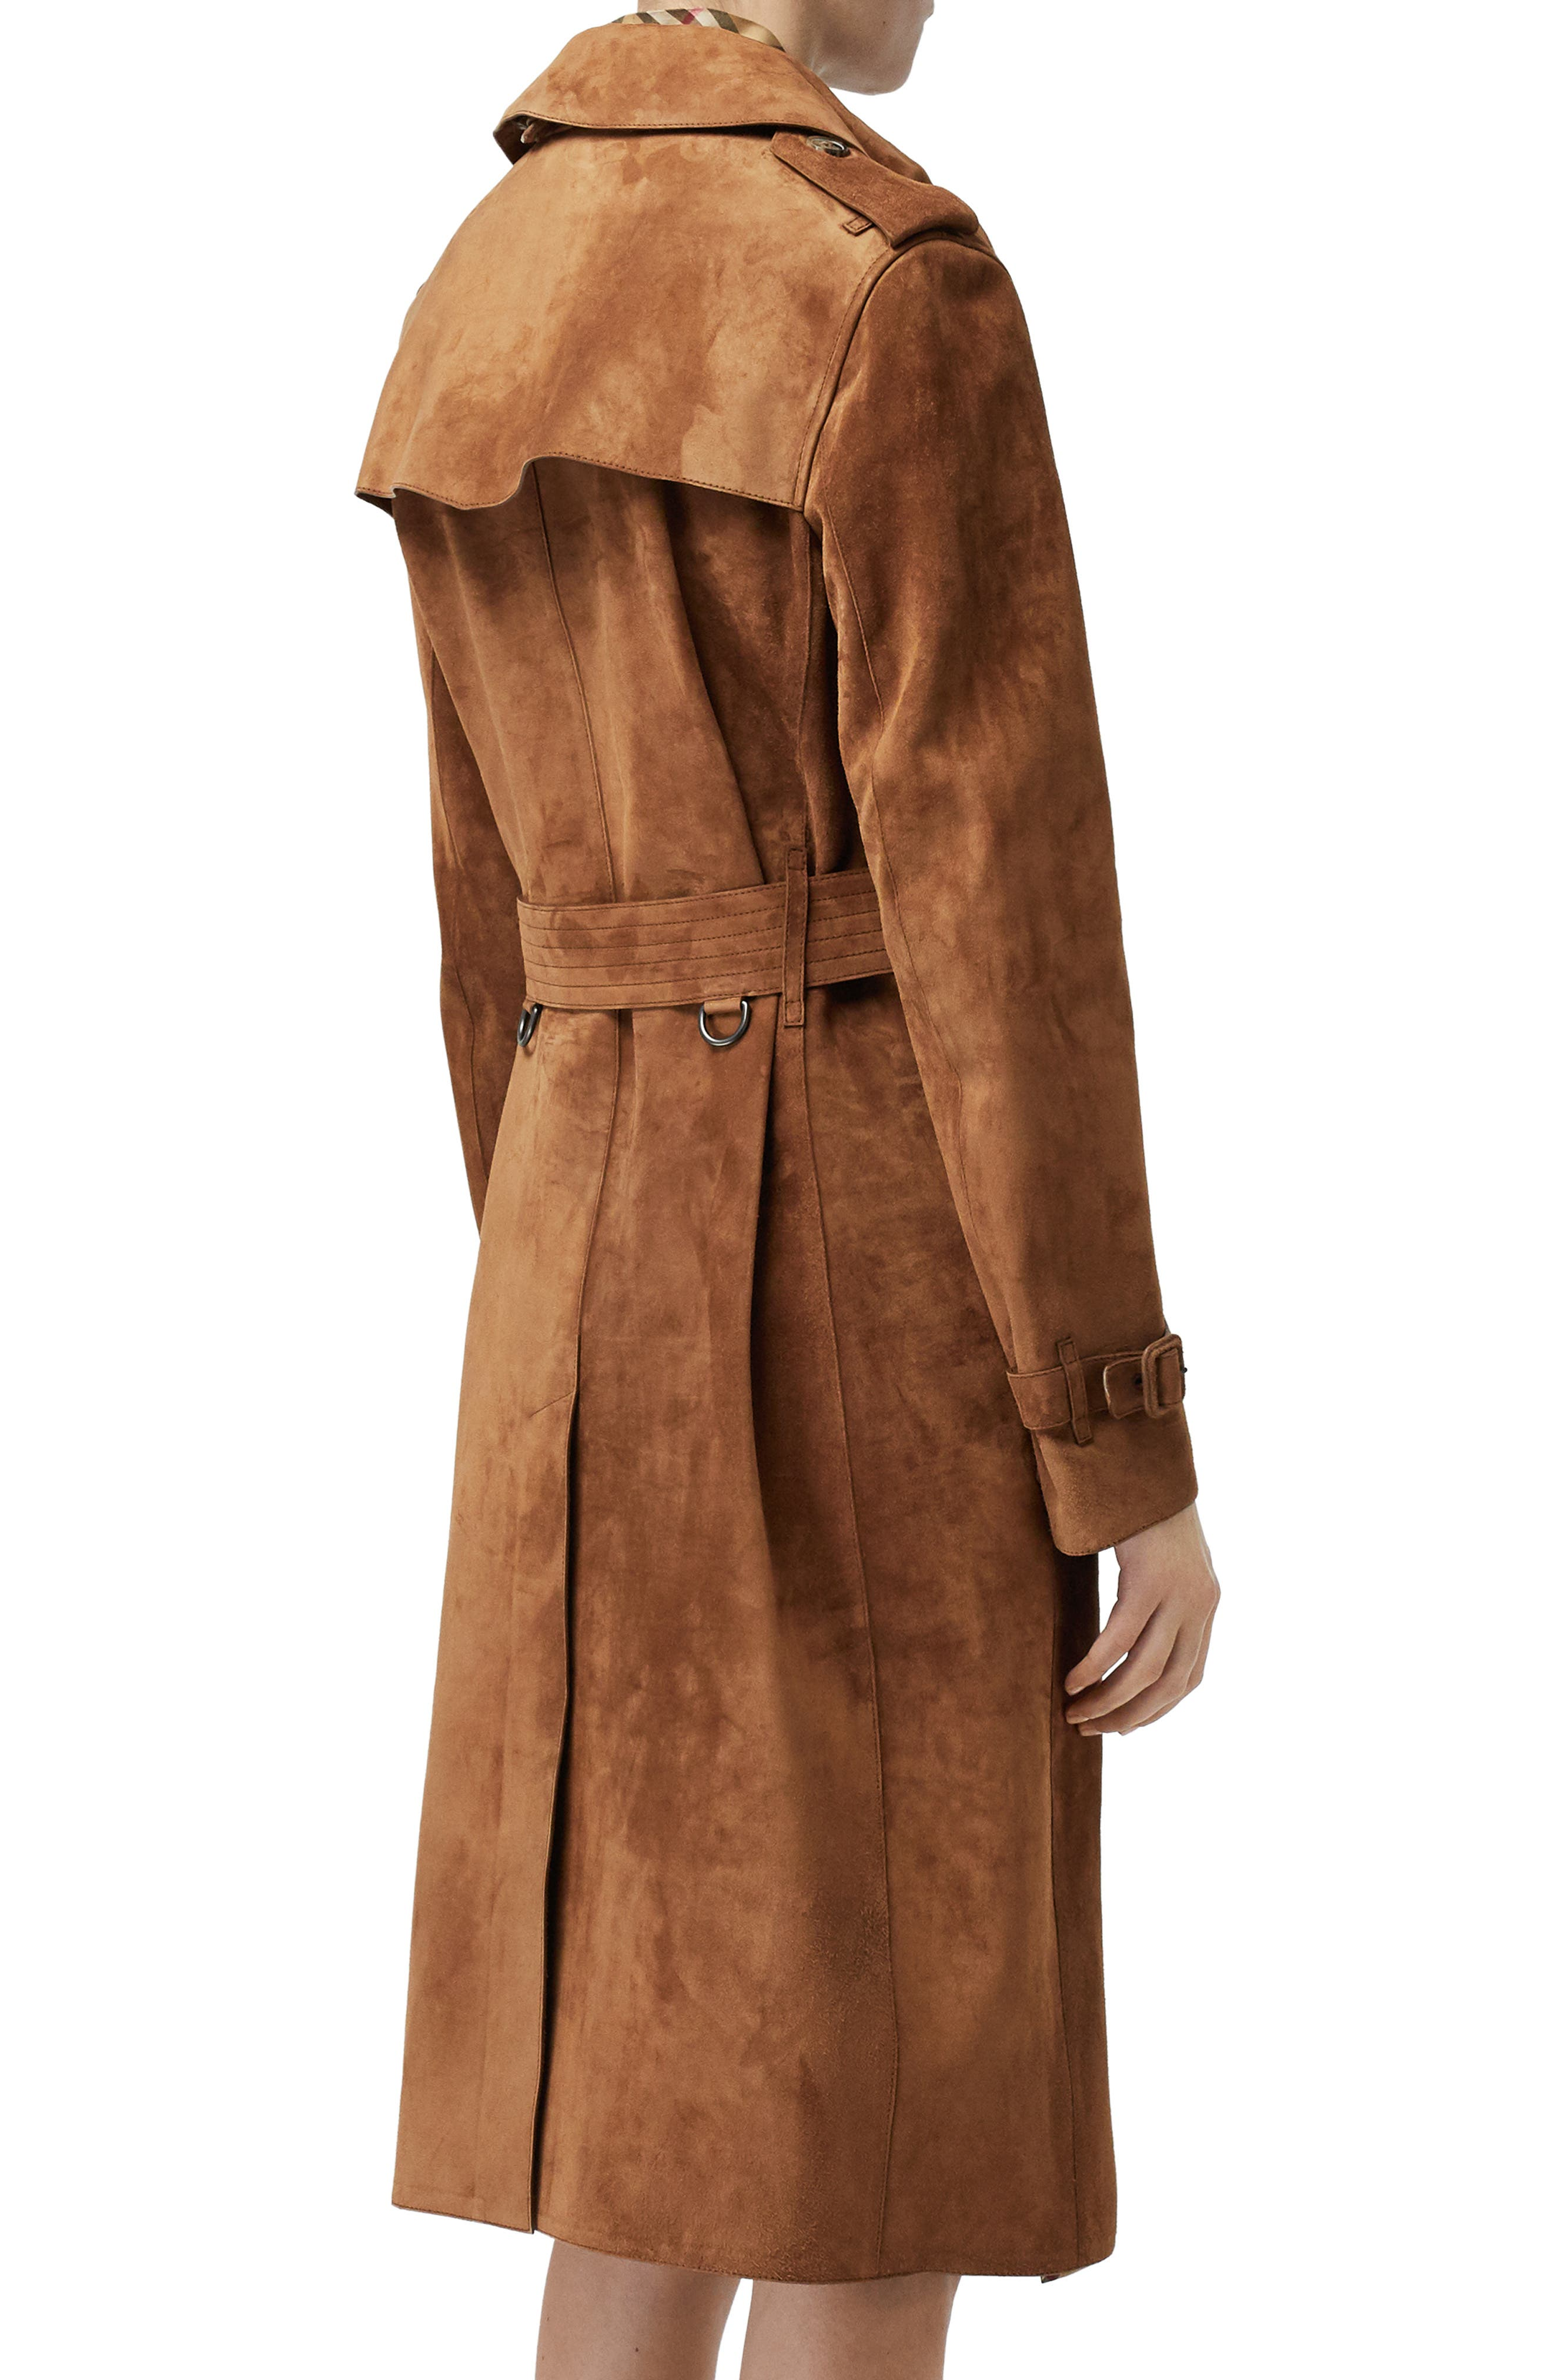 BURBERRY,                             Haddington Suede Trench Coat,                             Alternate thumbnail 3, color,                             SEPIA BROWN